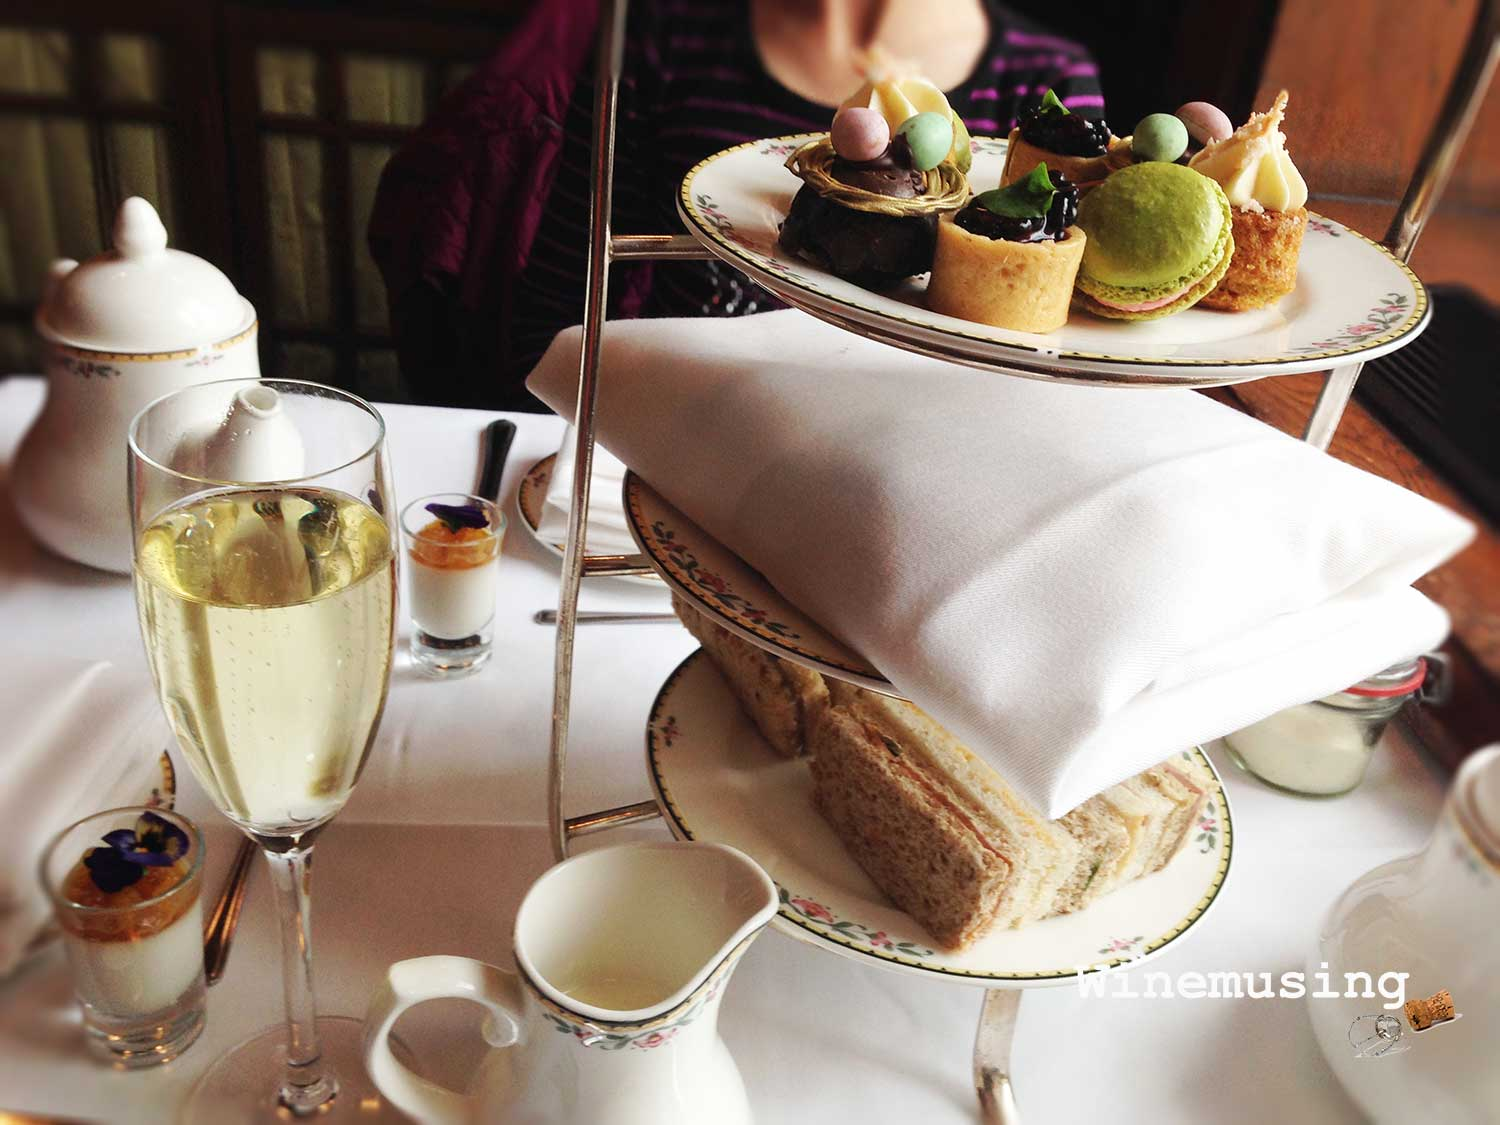 Afternoon Tea Ideas Which Wine To Serve For Tea Winemusing